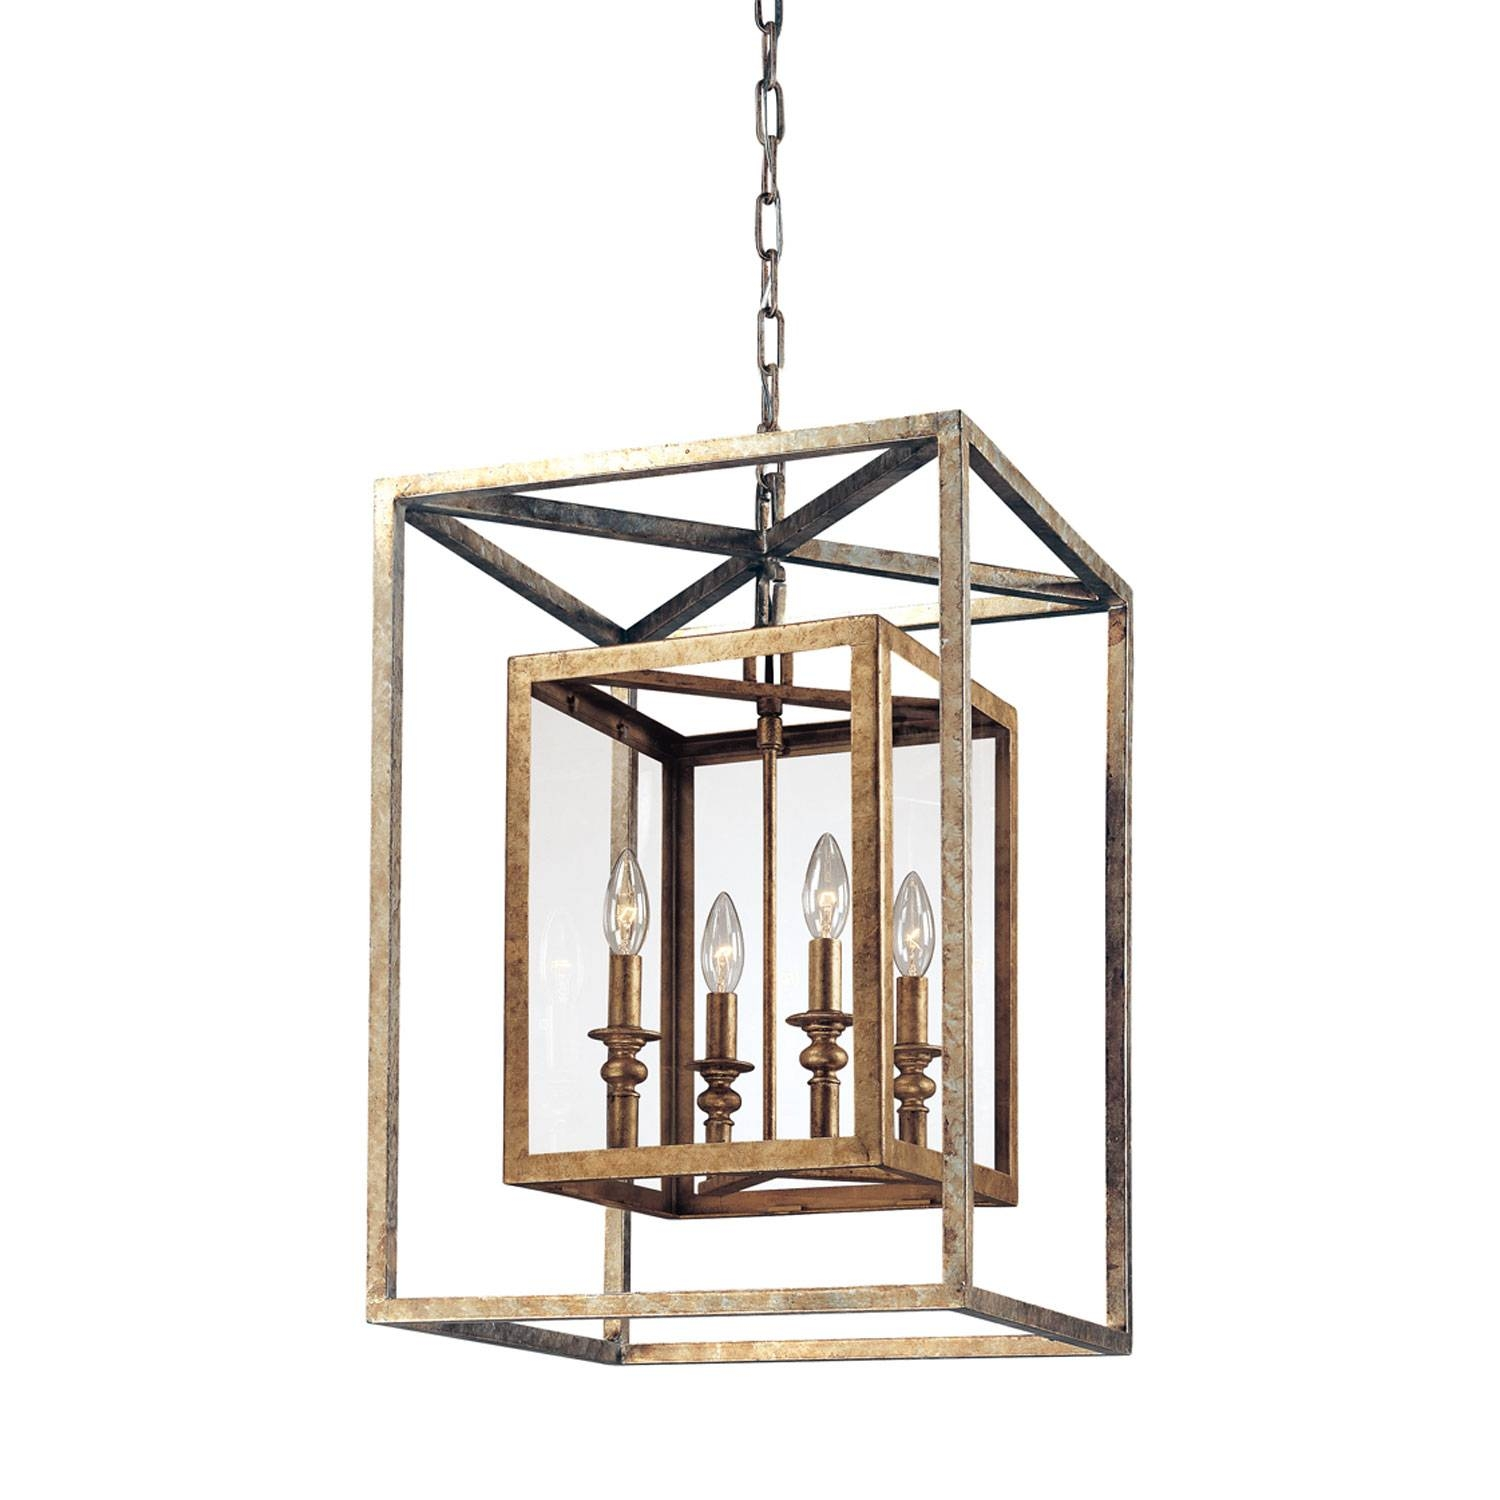 Chandeliers Design : Wonderful Lantern Chandelier Gold Pendant in Small Lantern Pendant Lights (Image 6 of 15)